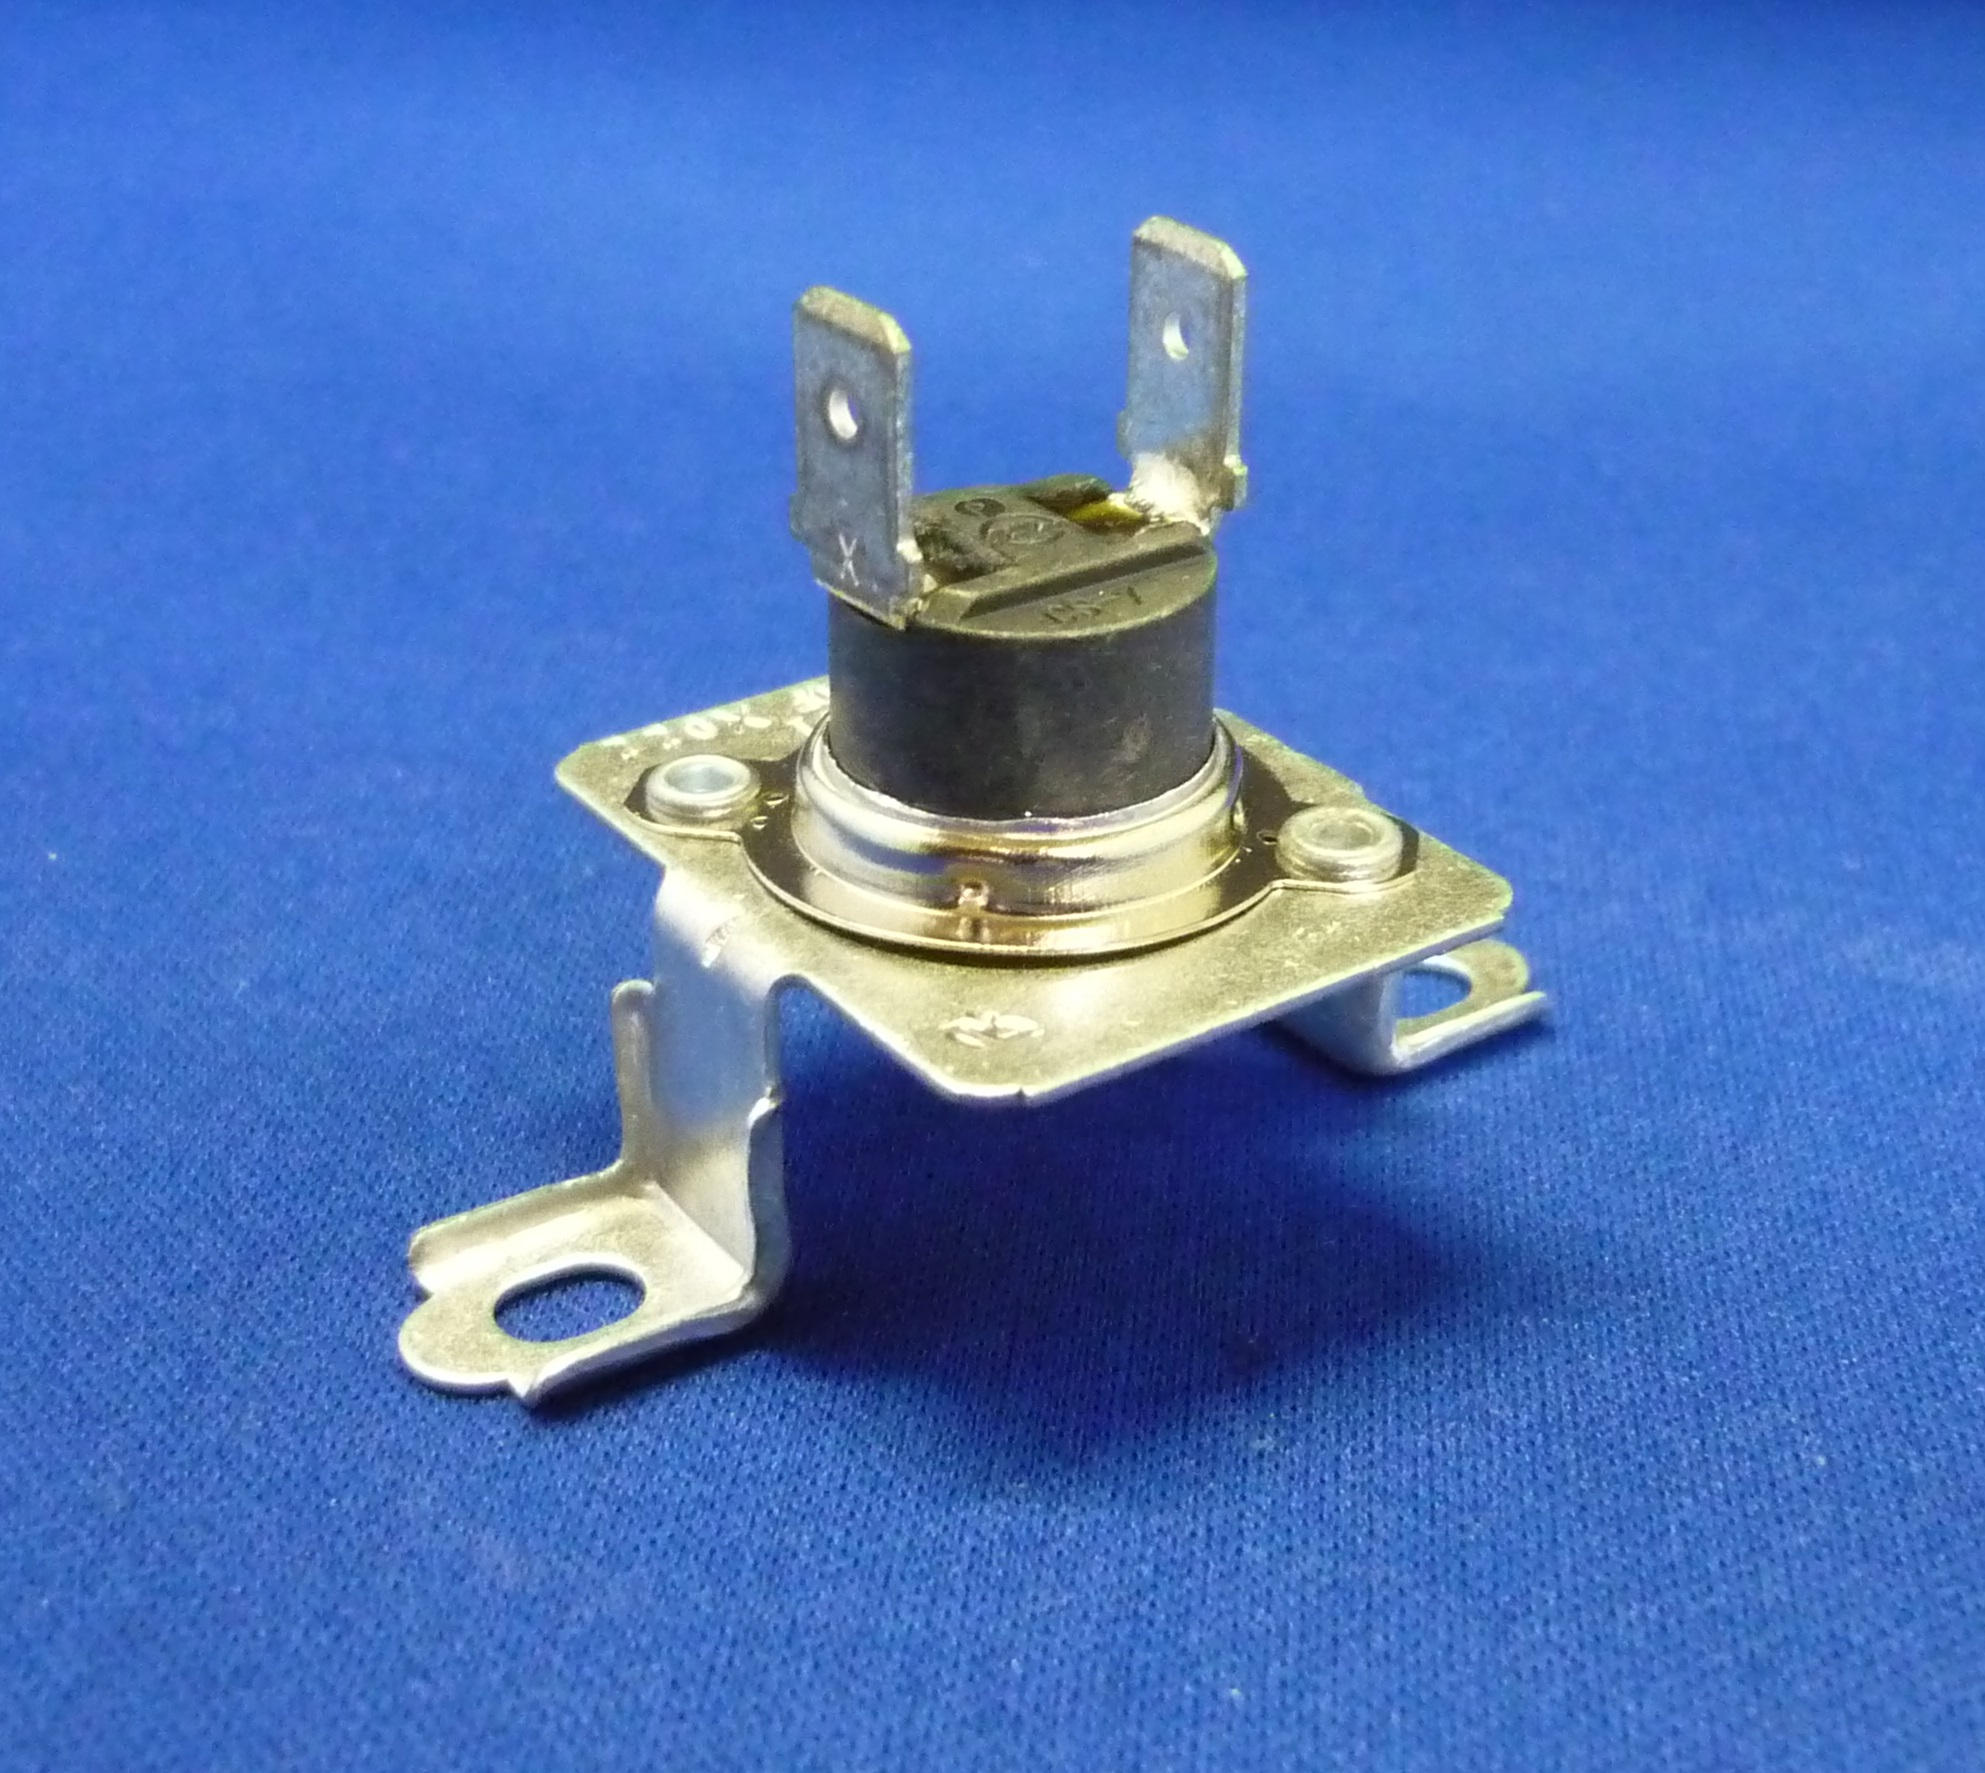 Maytag / Whirlpool T/Dryer Thermal Fuse | Cattermole Electrical